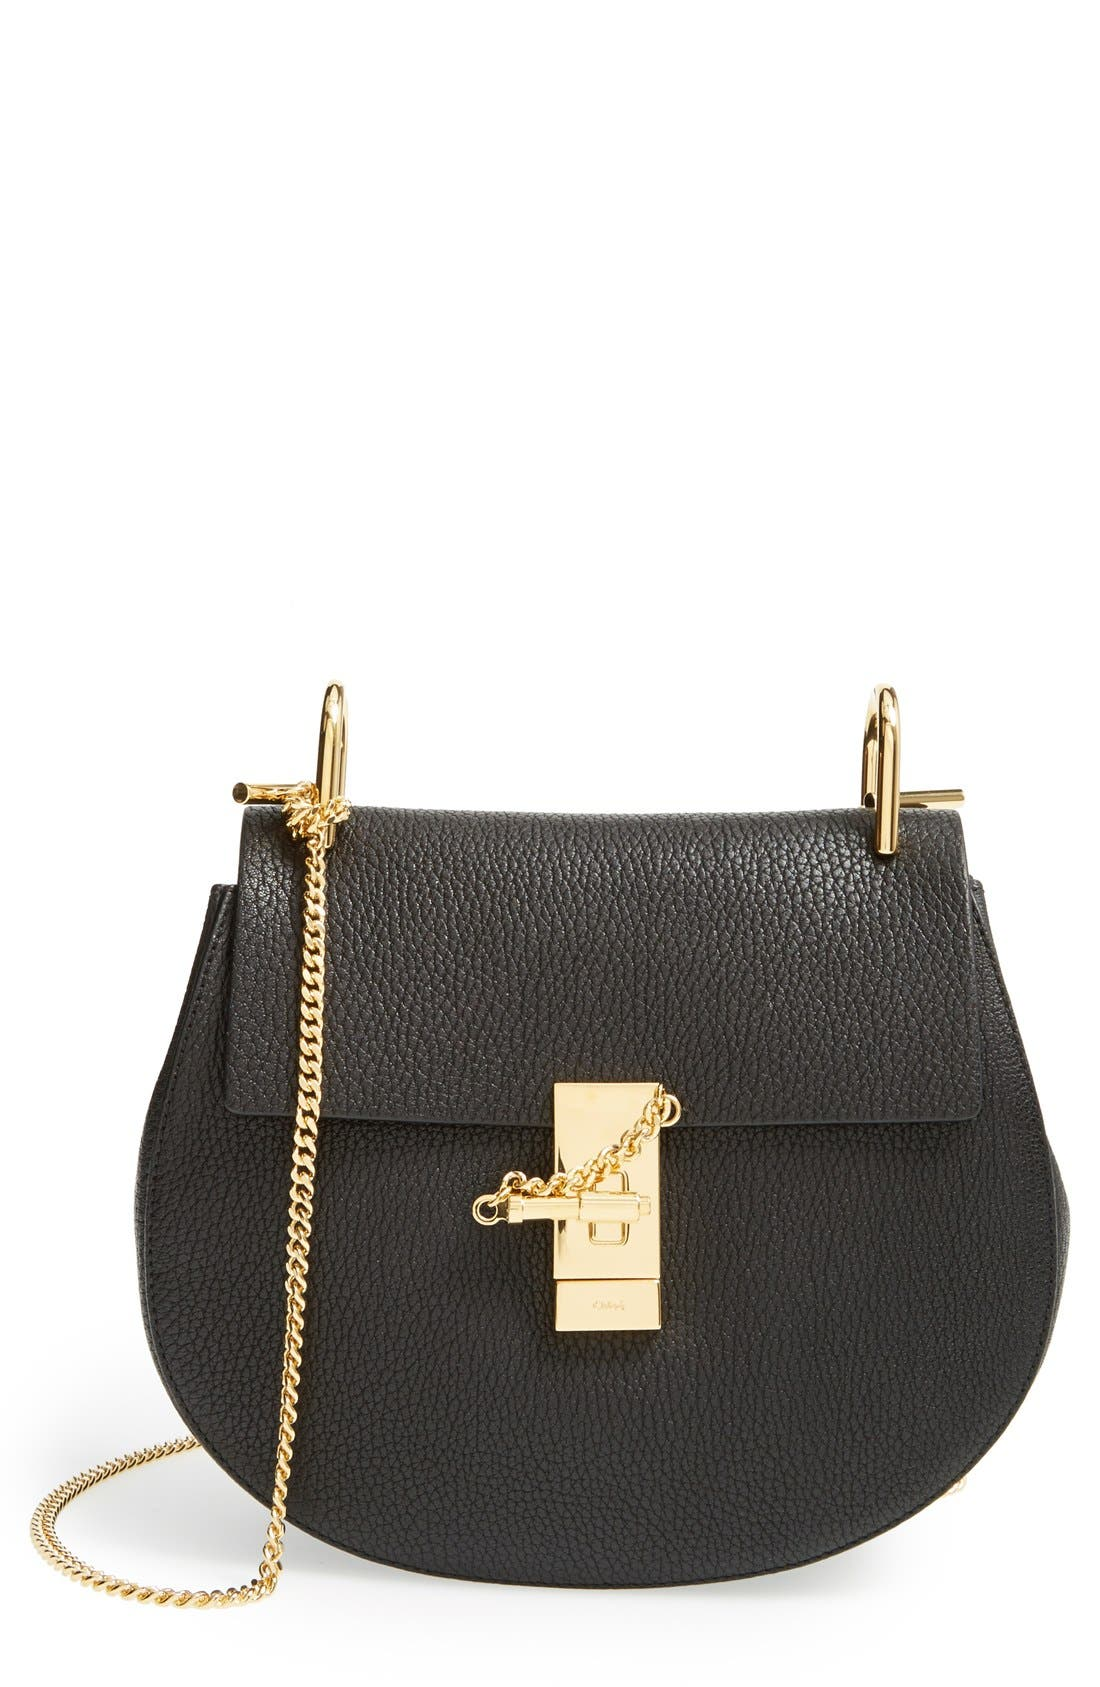 Main Image - Chloé Drew Leather Shoulder Bag